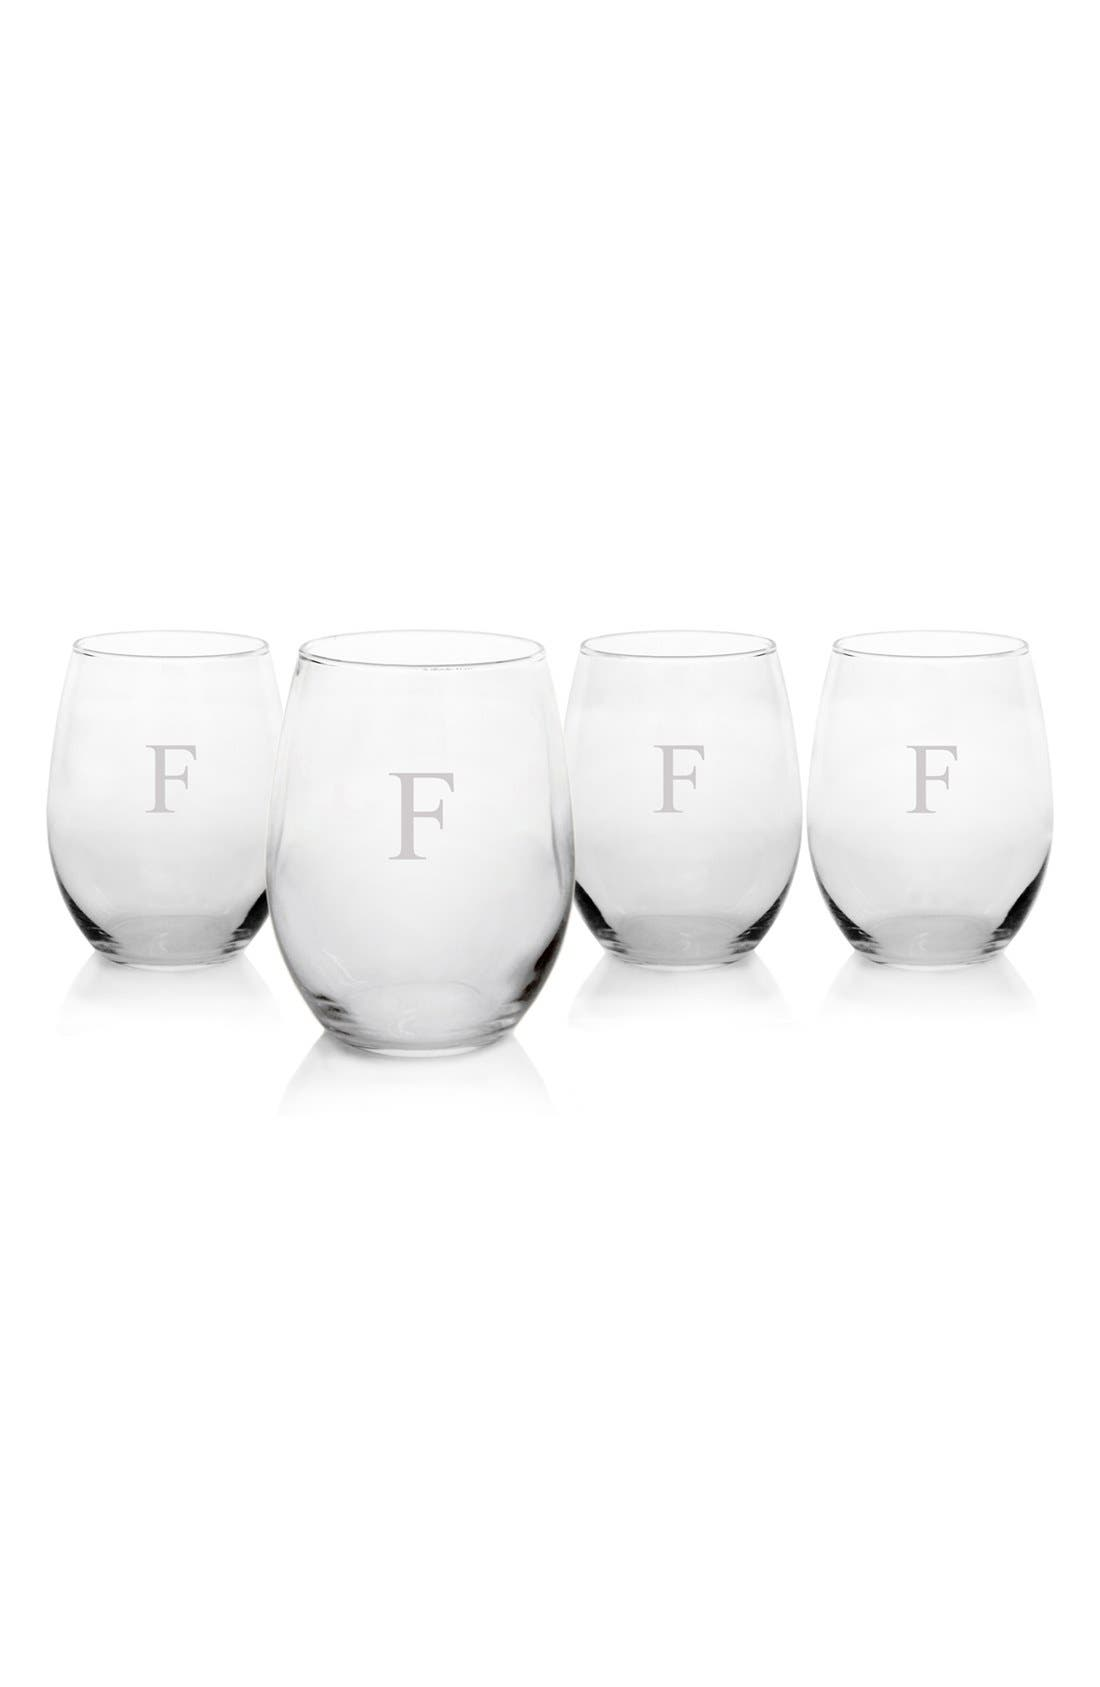 CATHY'S CONCEPTS Monogram Set of 4 Stemless Wine